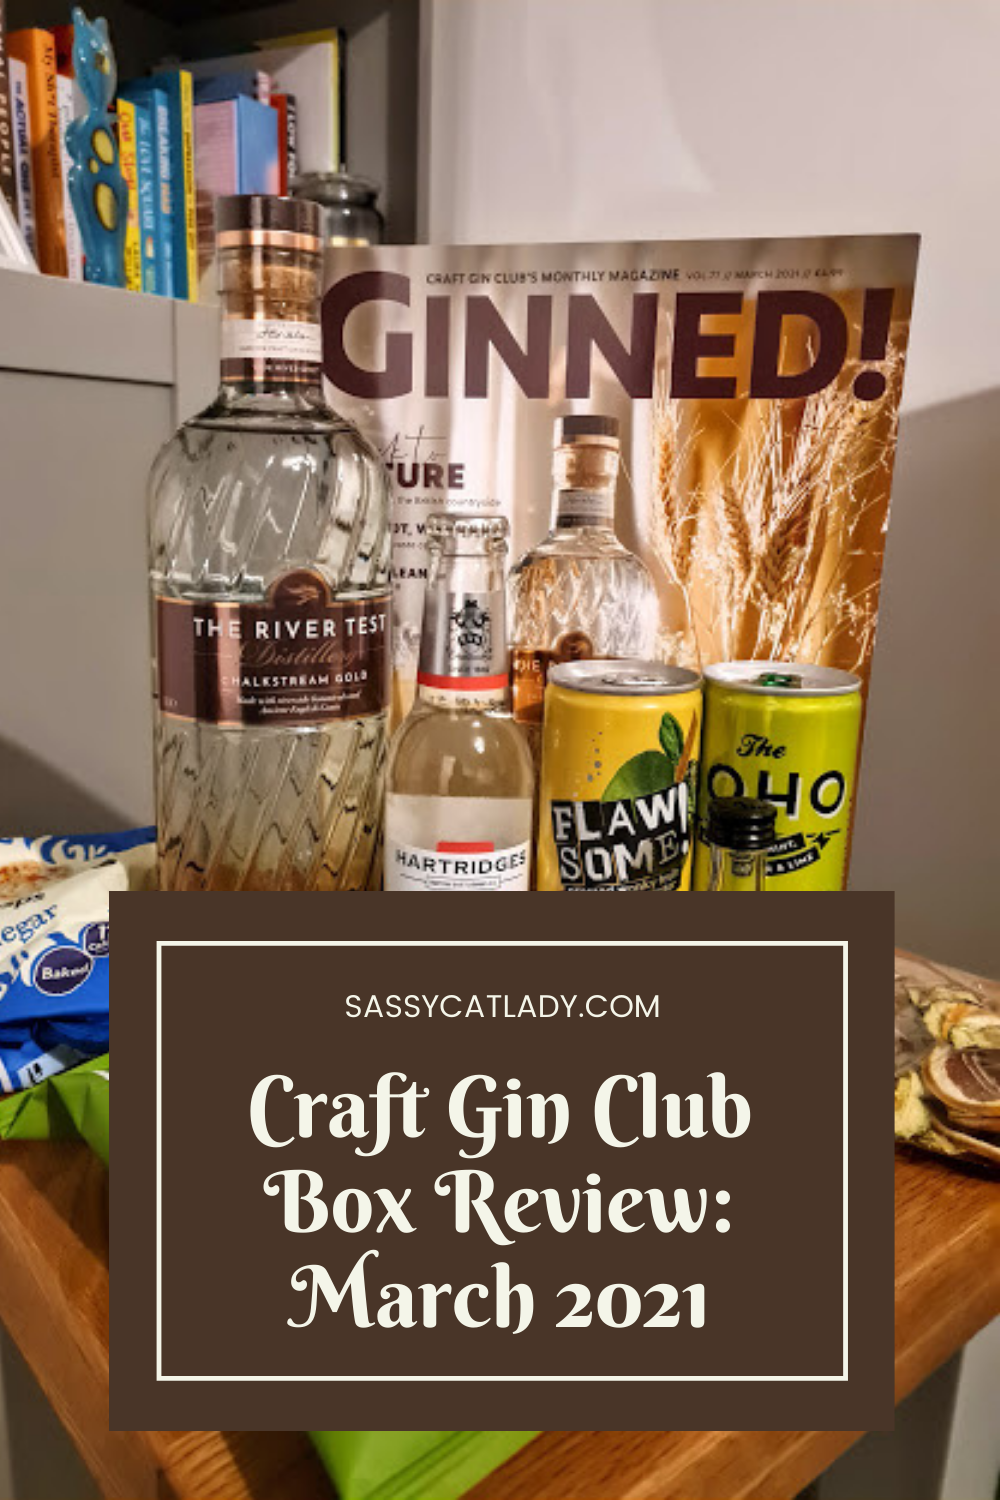 Craft Gin Club Review - March 2021 - Pinterest Graphic